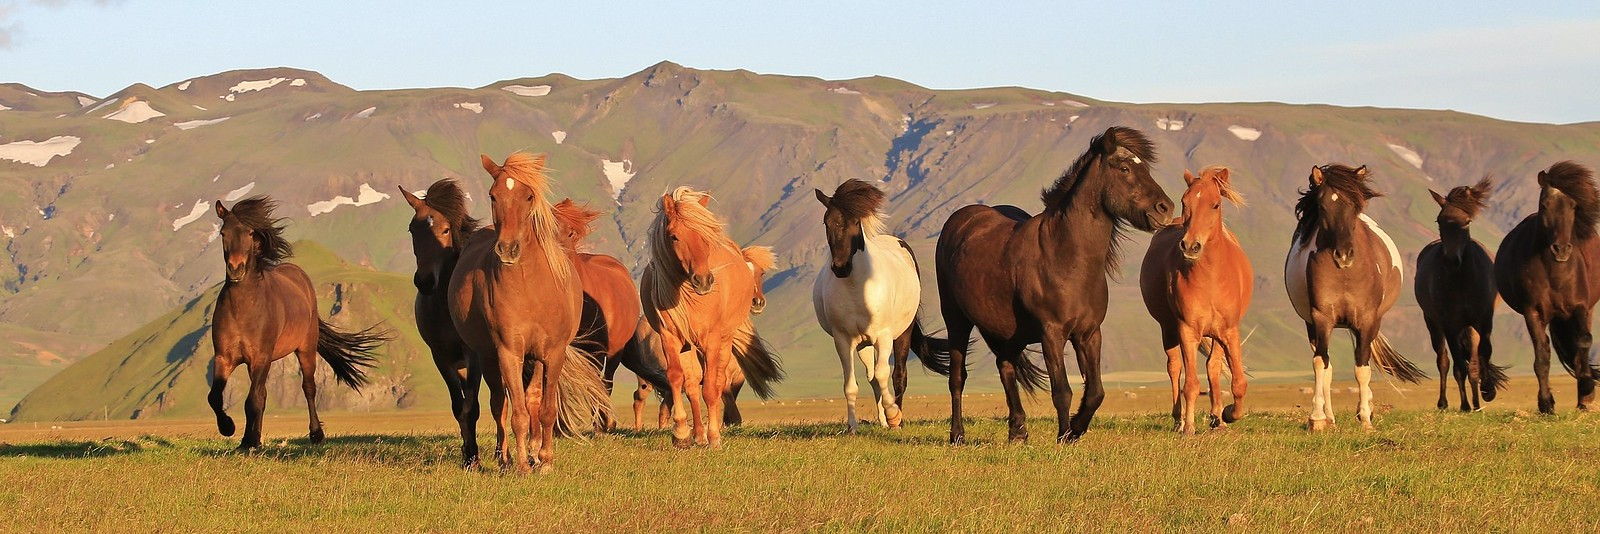 Icelandic horses in the evening sun